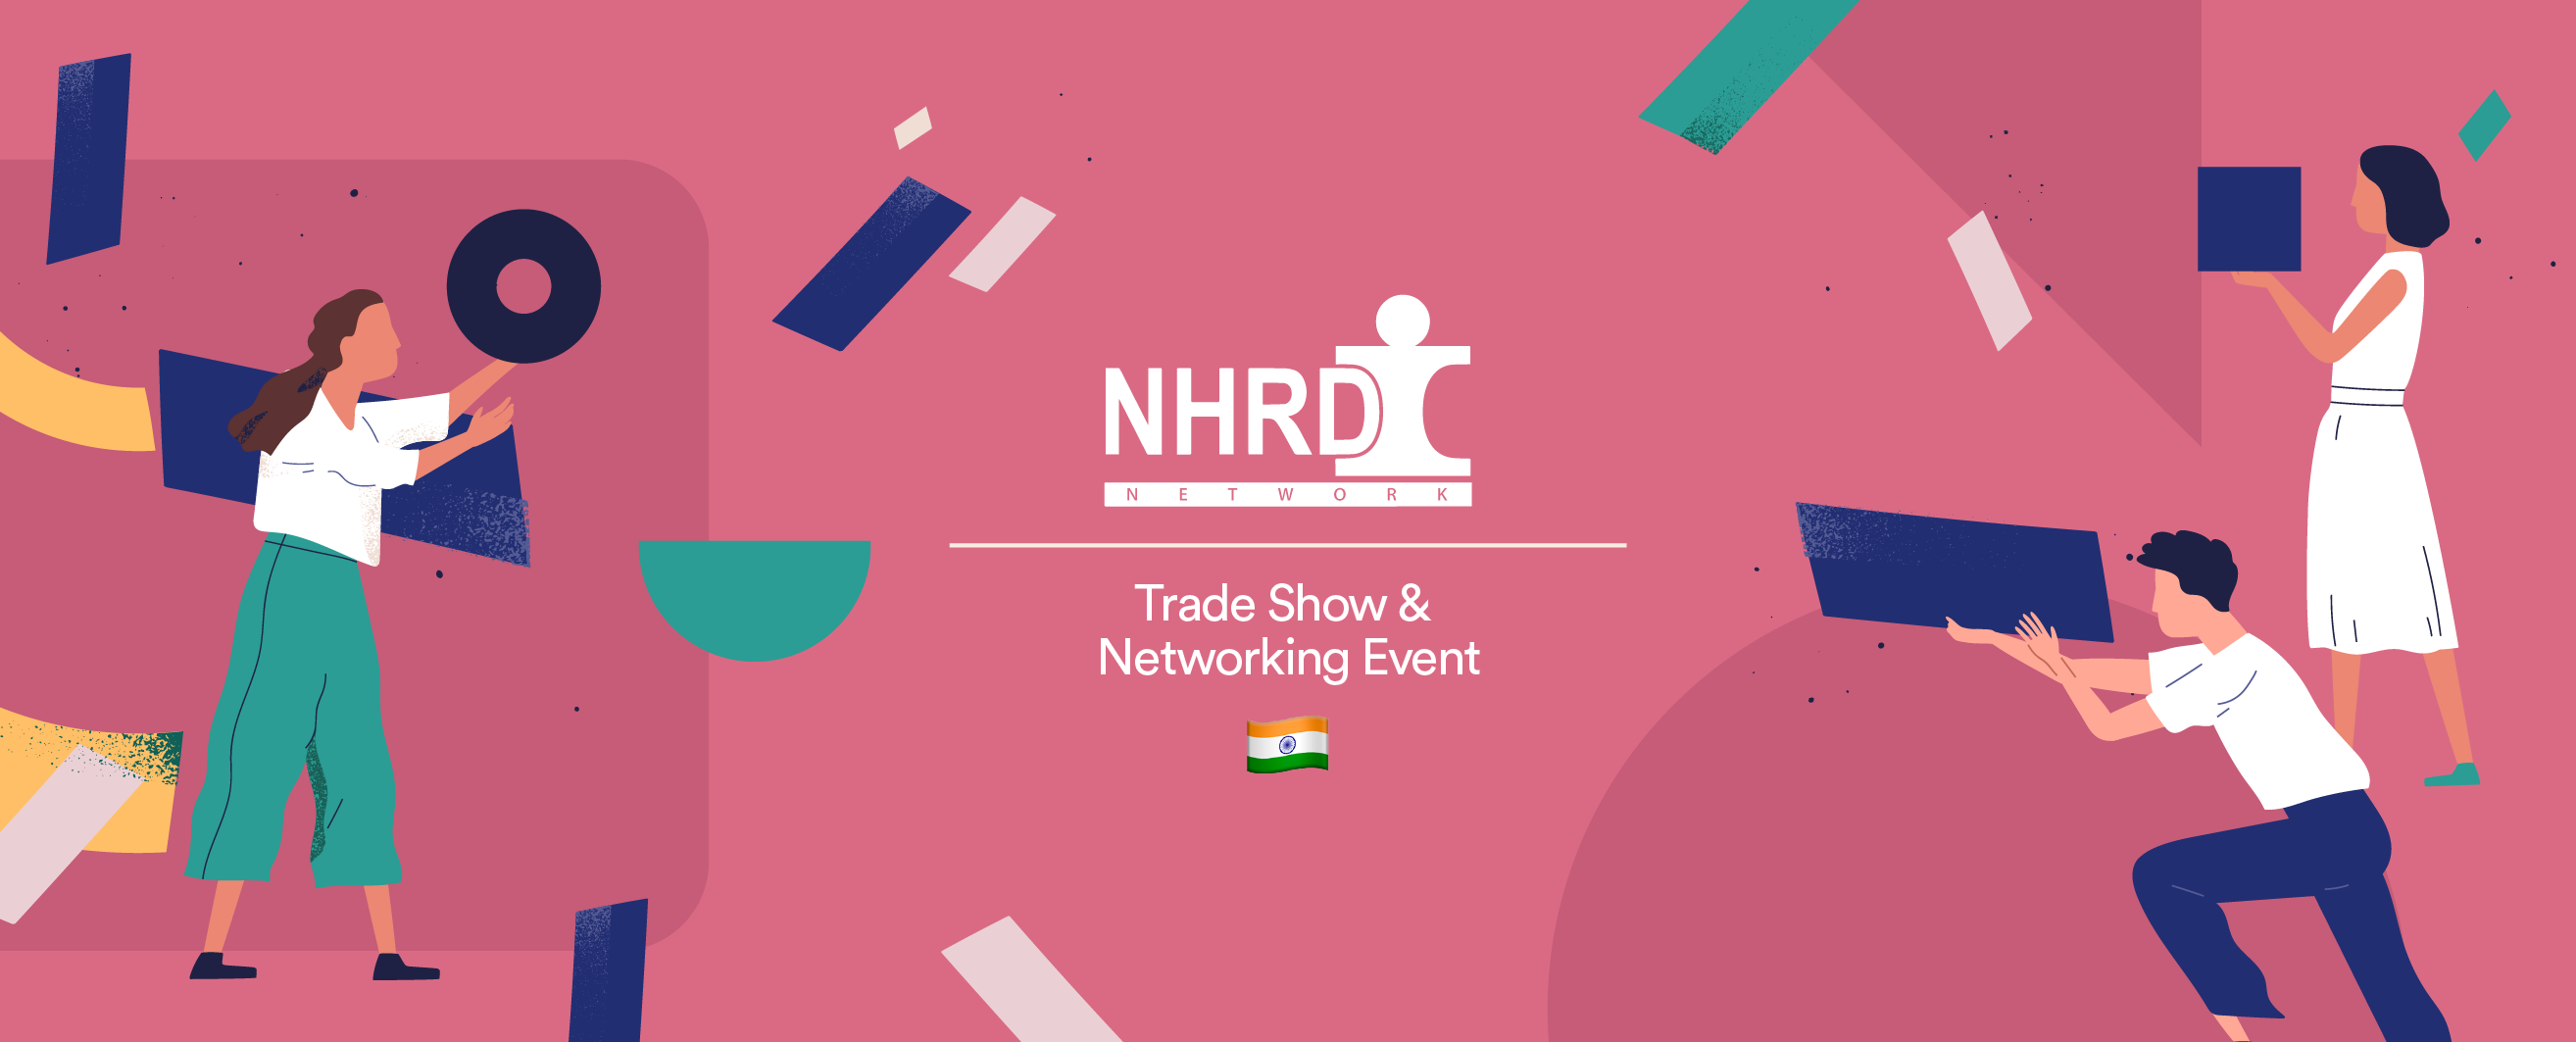 'NHRDN' hosts 2000+ attendees on Airmeet for their first-ever Virtual 'HR Showcase' with 45+ corporates & 100 booths